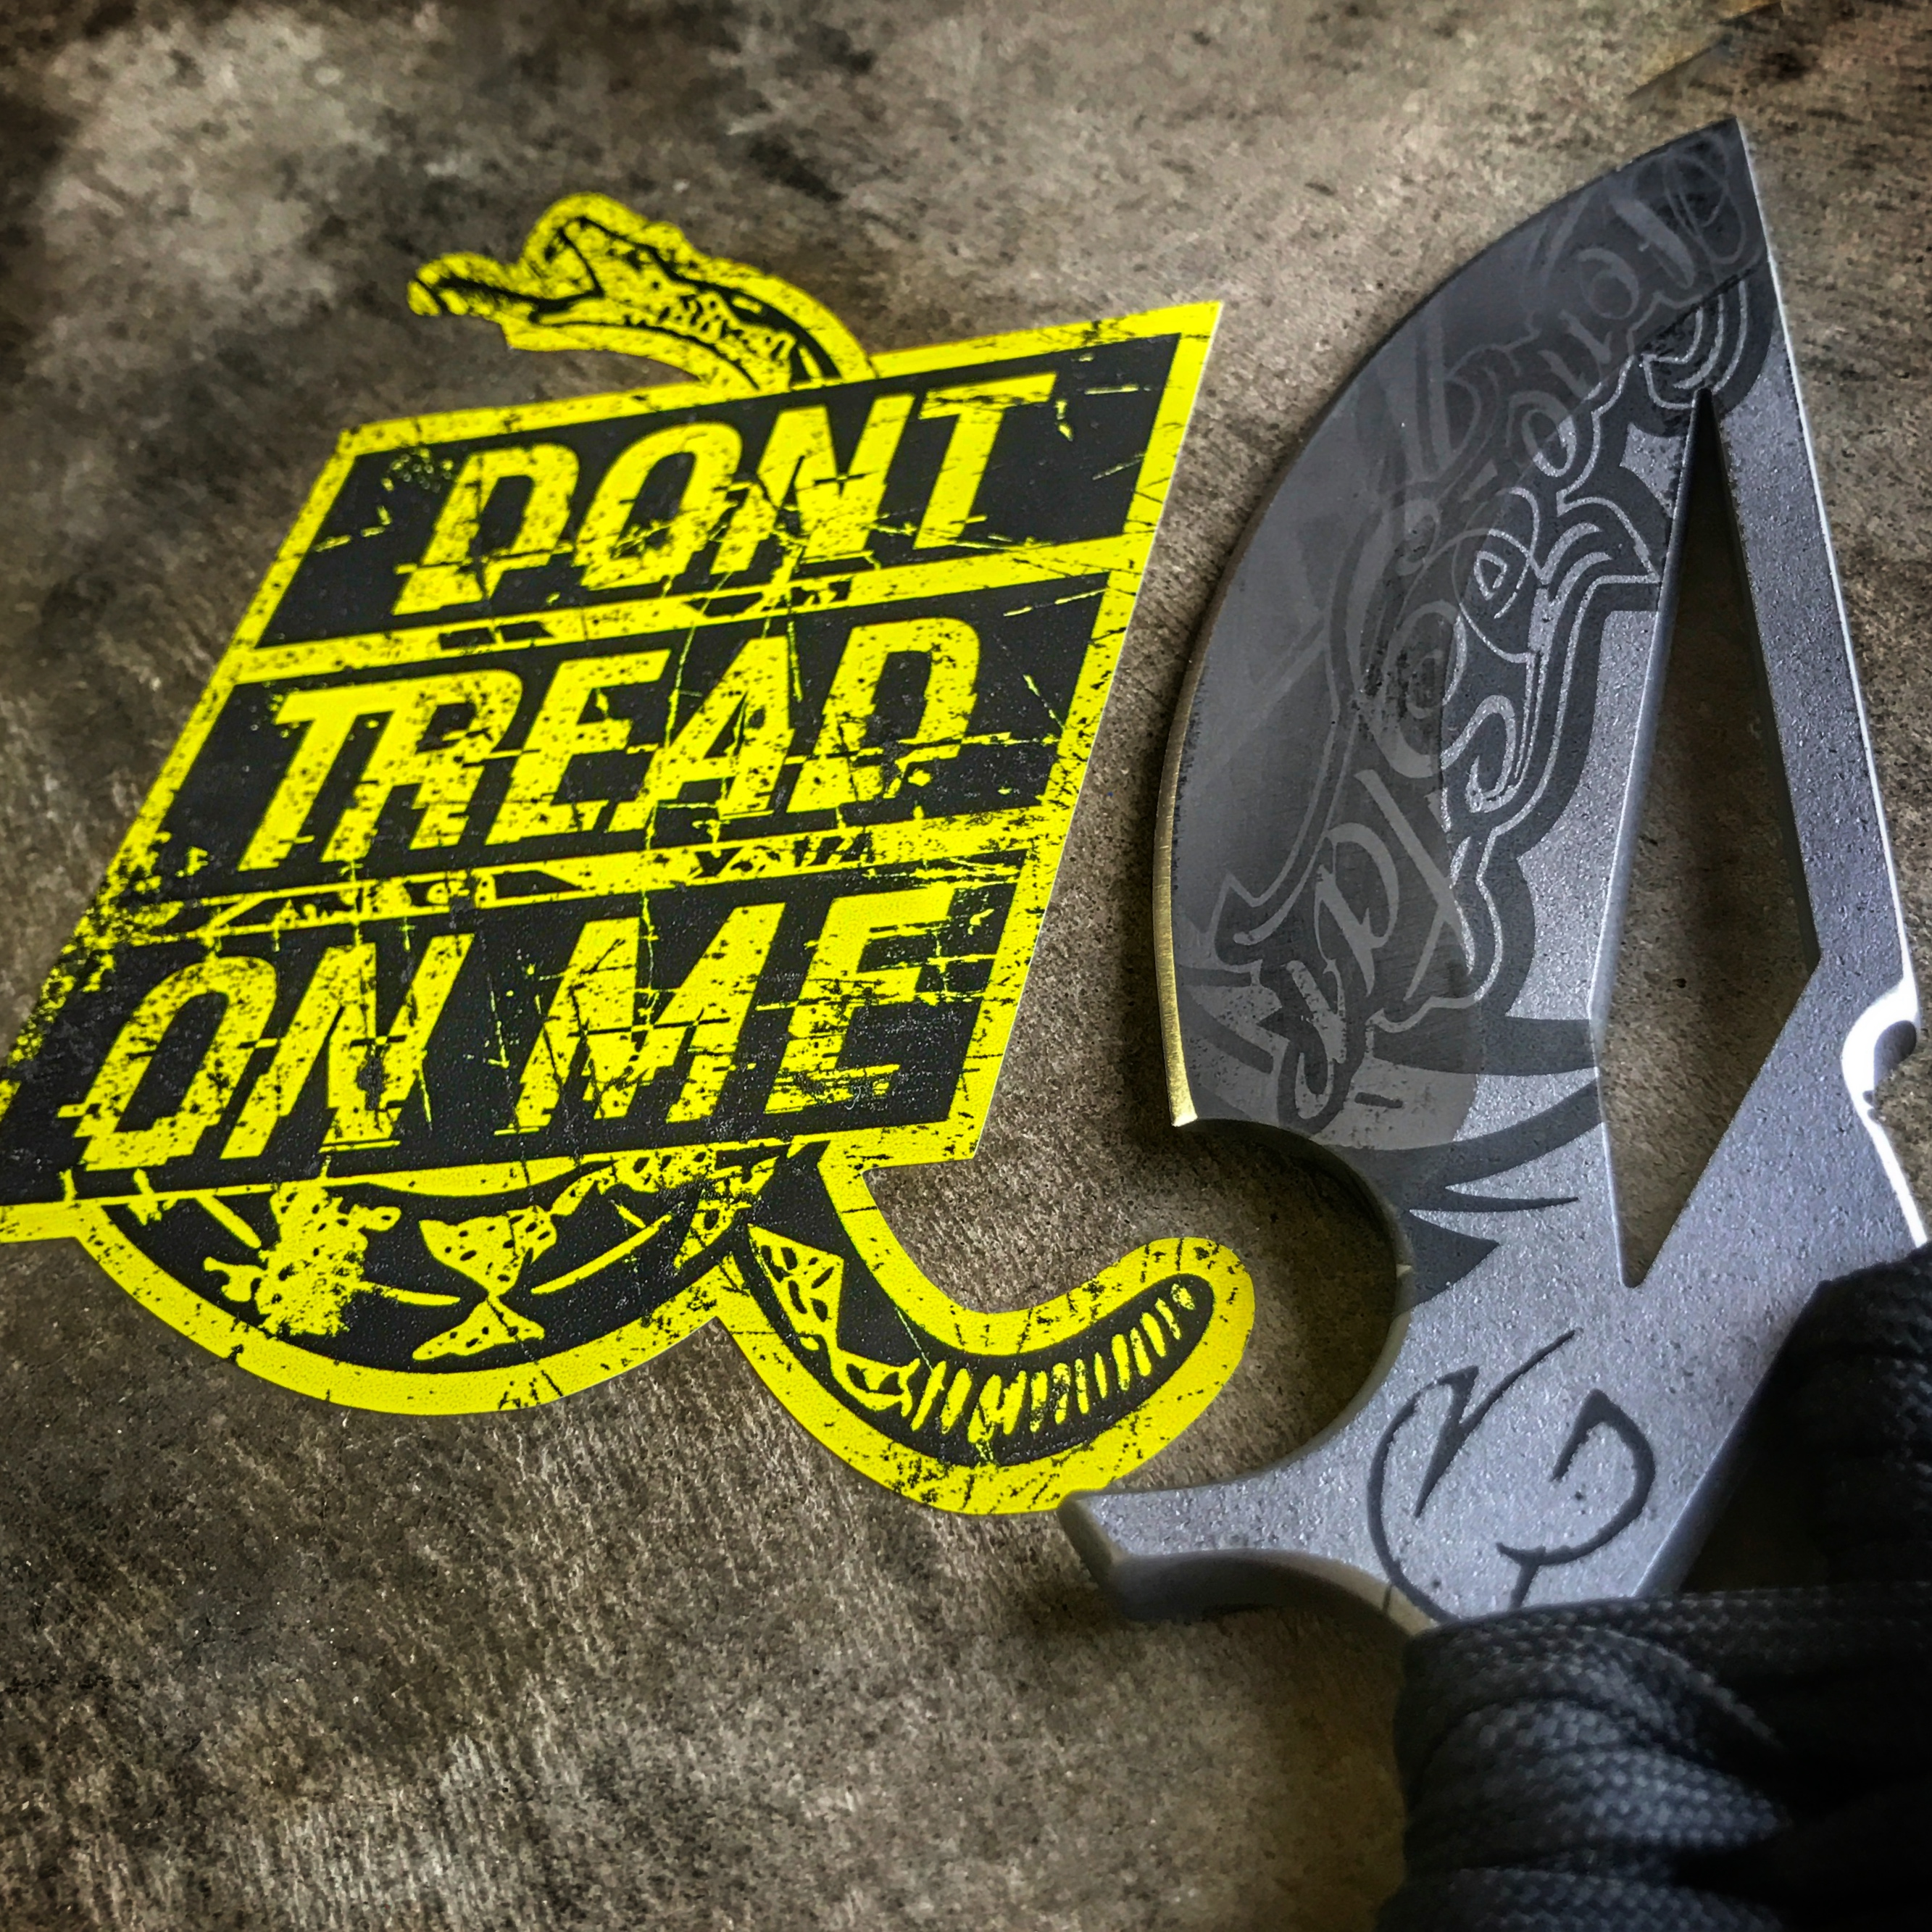 dont-tread-on-me-scorpion-6-knife.jpg